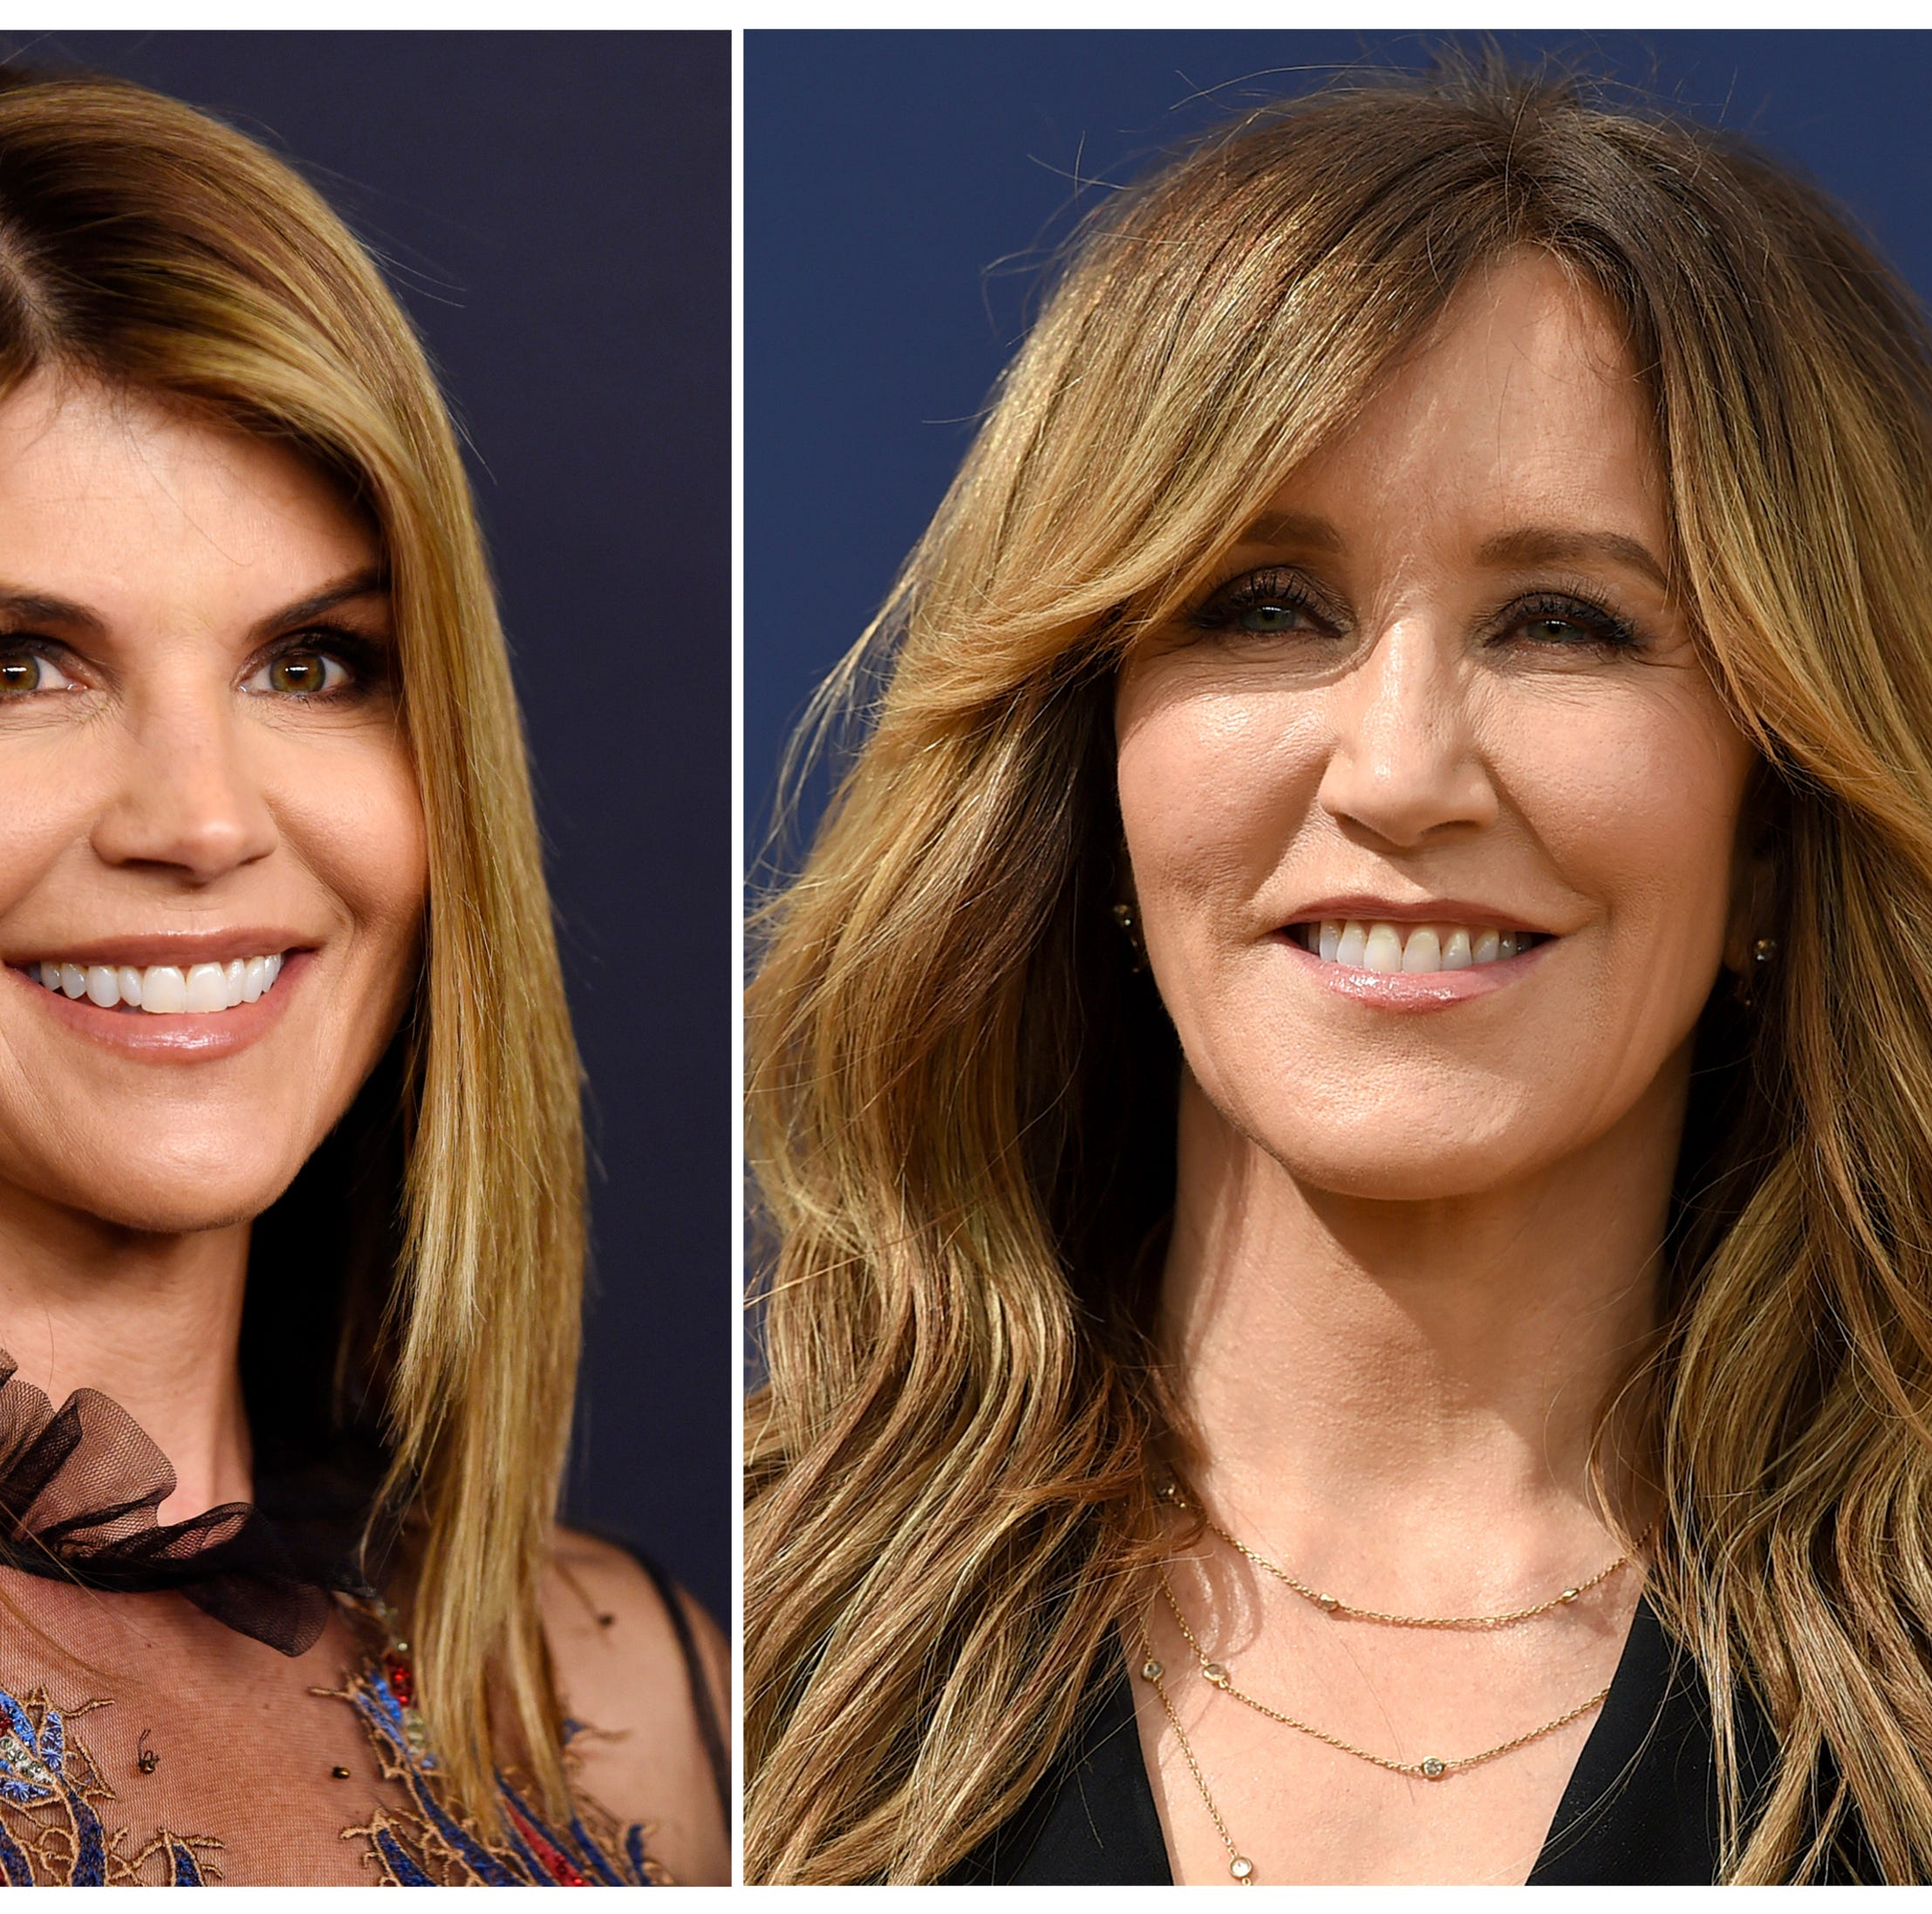 Give them a break: Lori Loughlin, Felicity Huffman deserve less anger in admission scandal